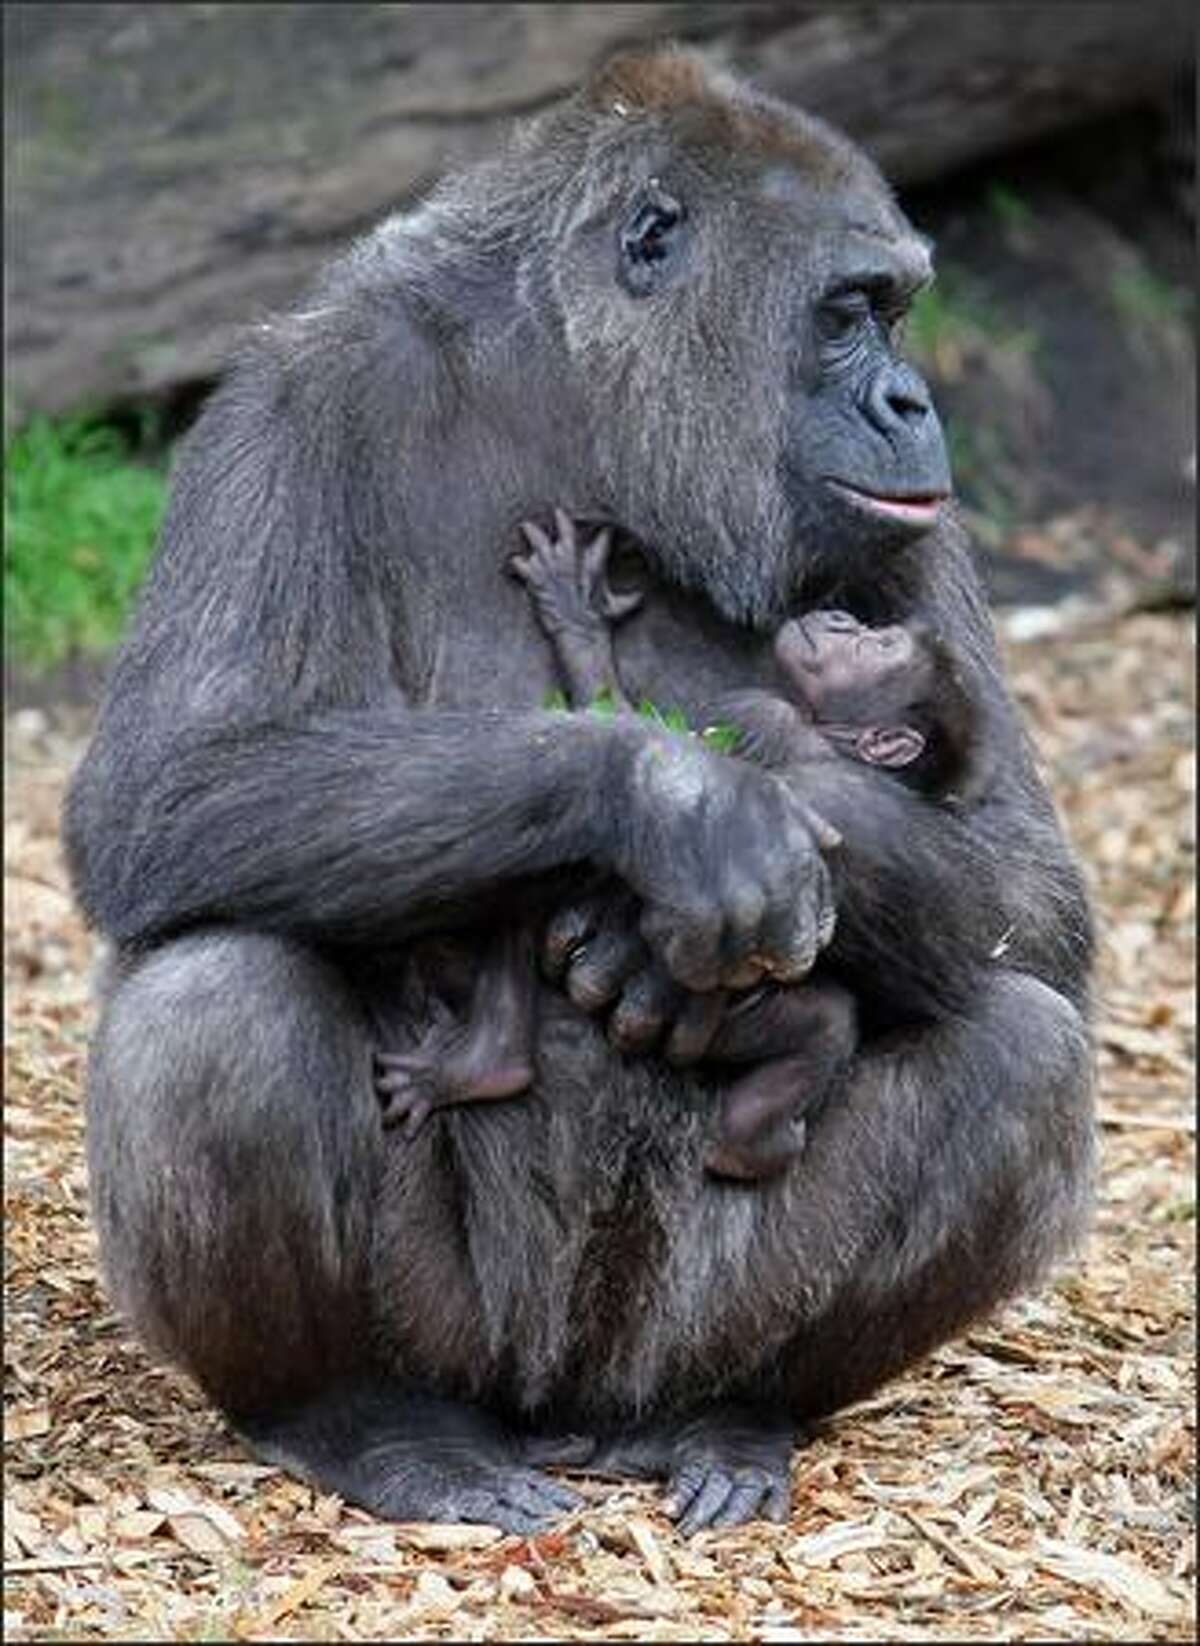 Western Lowland gorilla 'Mouila' cradles her ten-day-old baby 'Mahale' during his first public appearance at Taronga Zoo in Sydney. 'Mahale', which means 'an event' in Swahili, reflects the success of Taronga's breeding and research programmes with endangered wildlife.